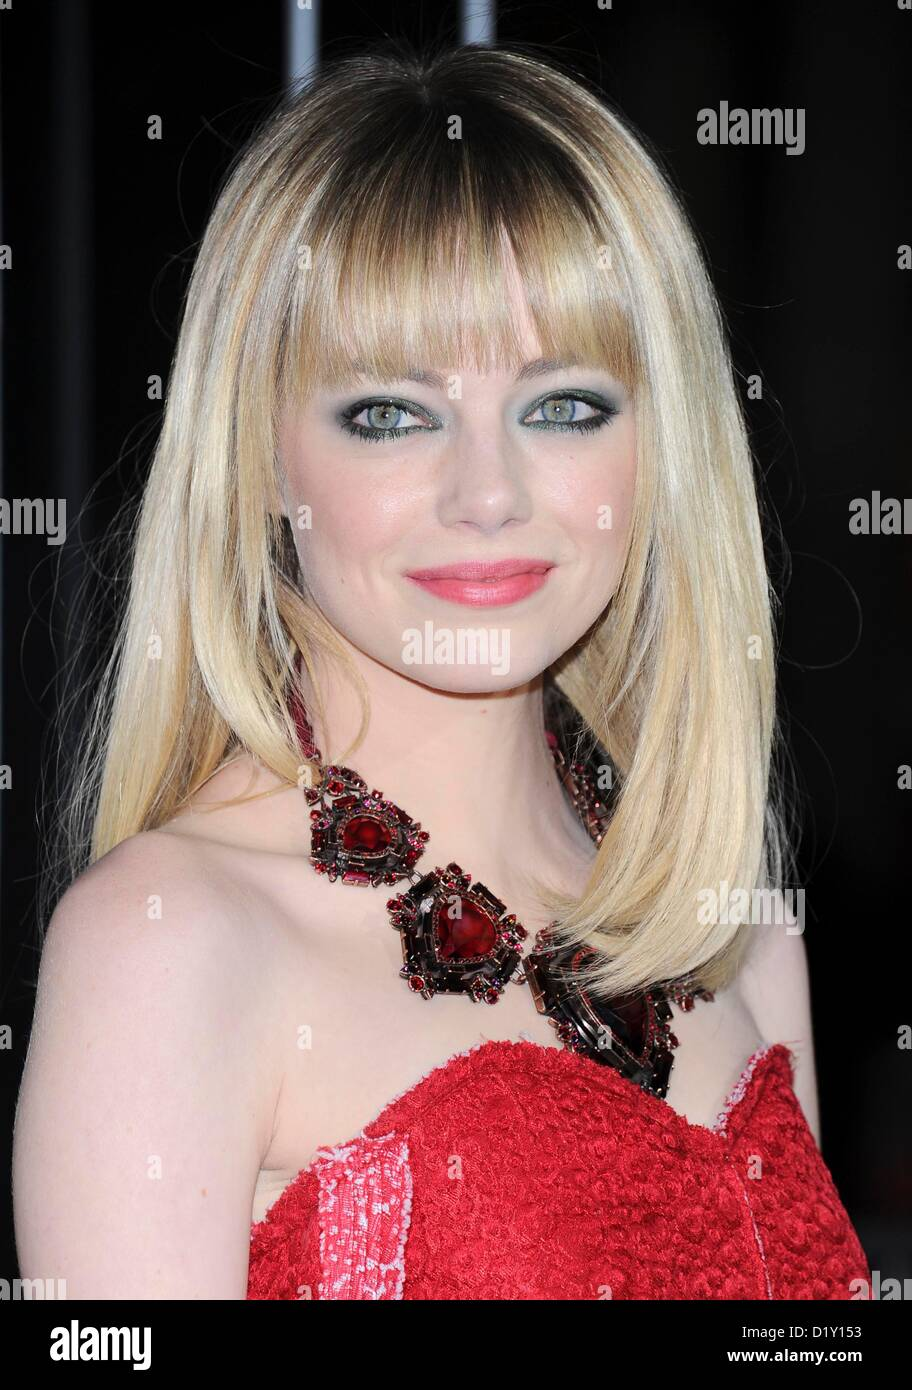 Actress Emma Stone arrives at the film premiere for 'Gangster Squad' at the Chinese Theatre in Hollywood, - Stock Image